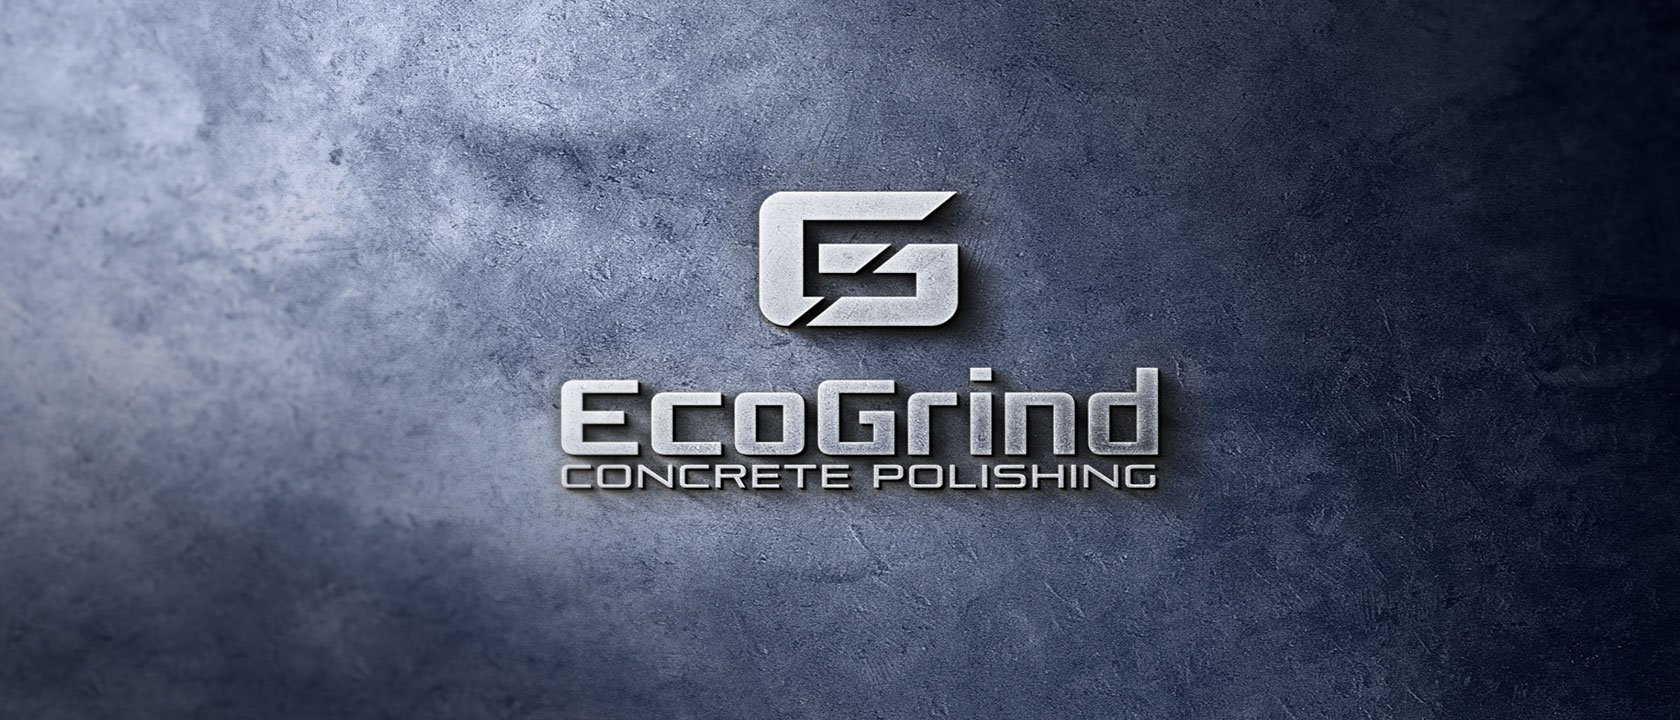 Eco Grind - concrete polishing faq